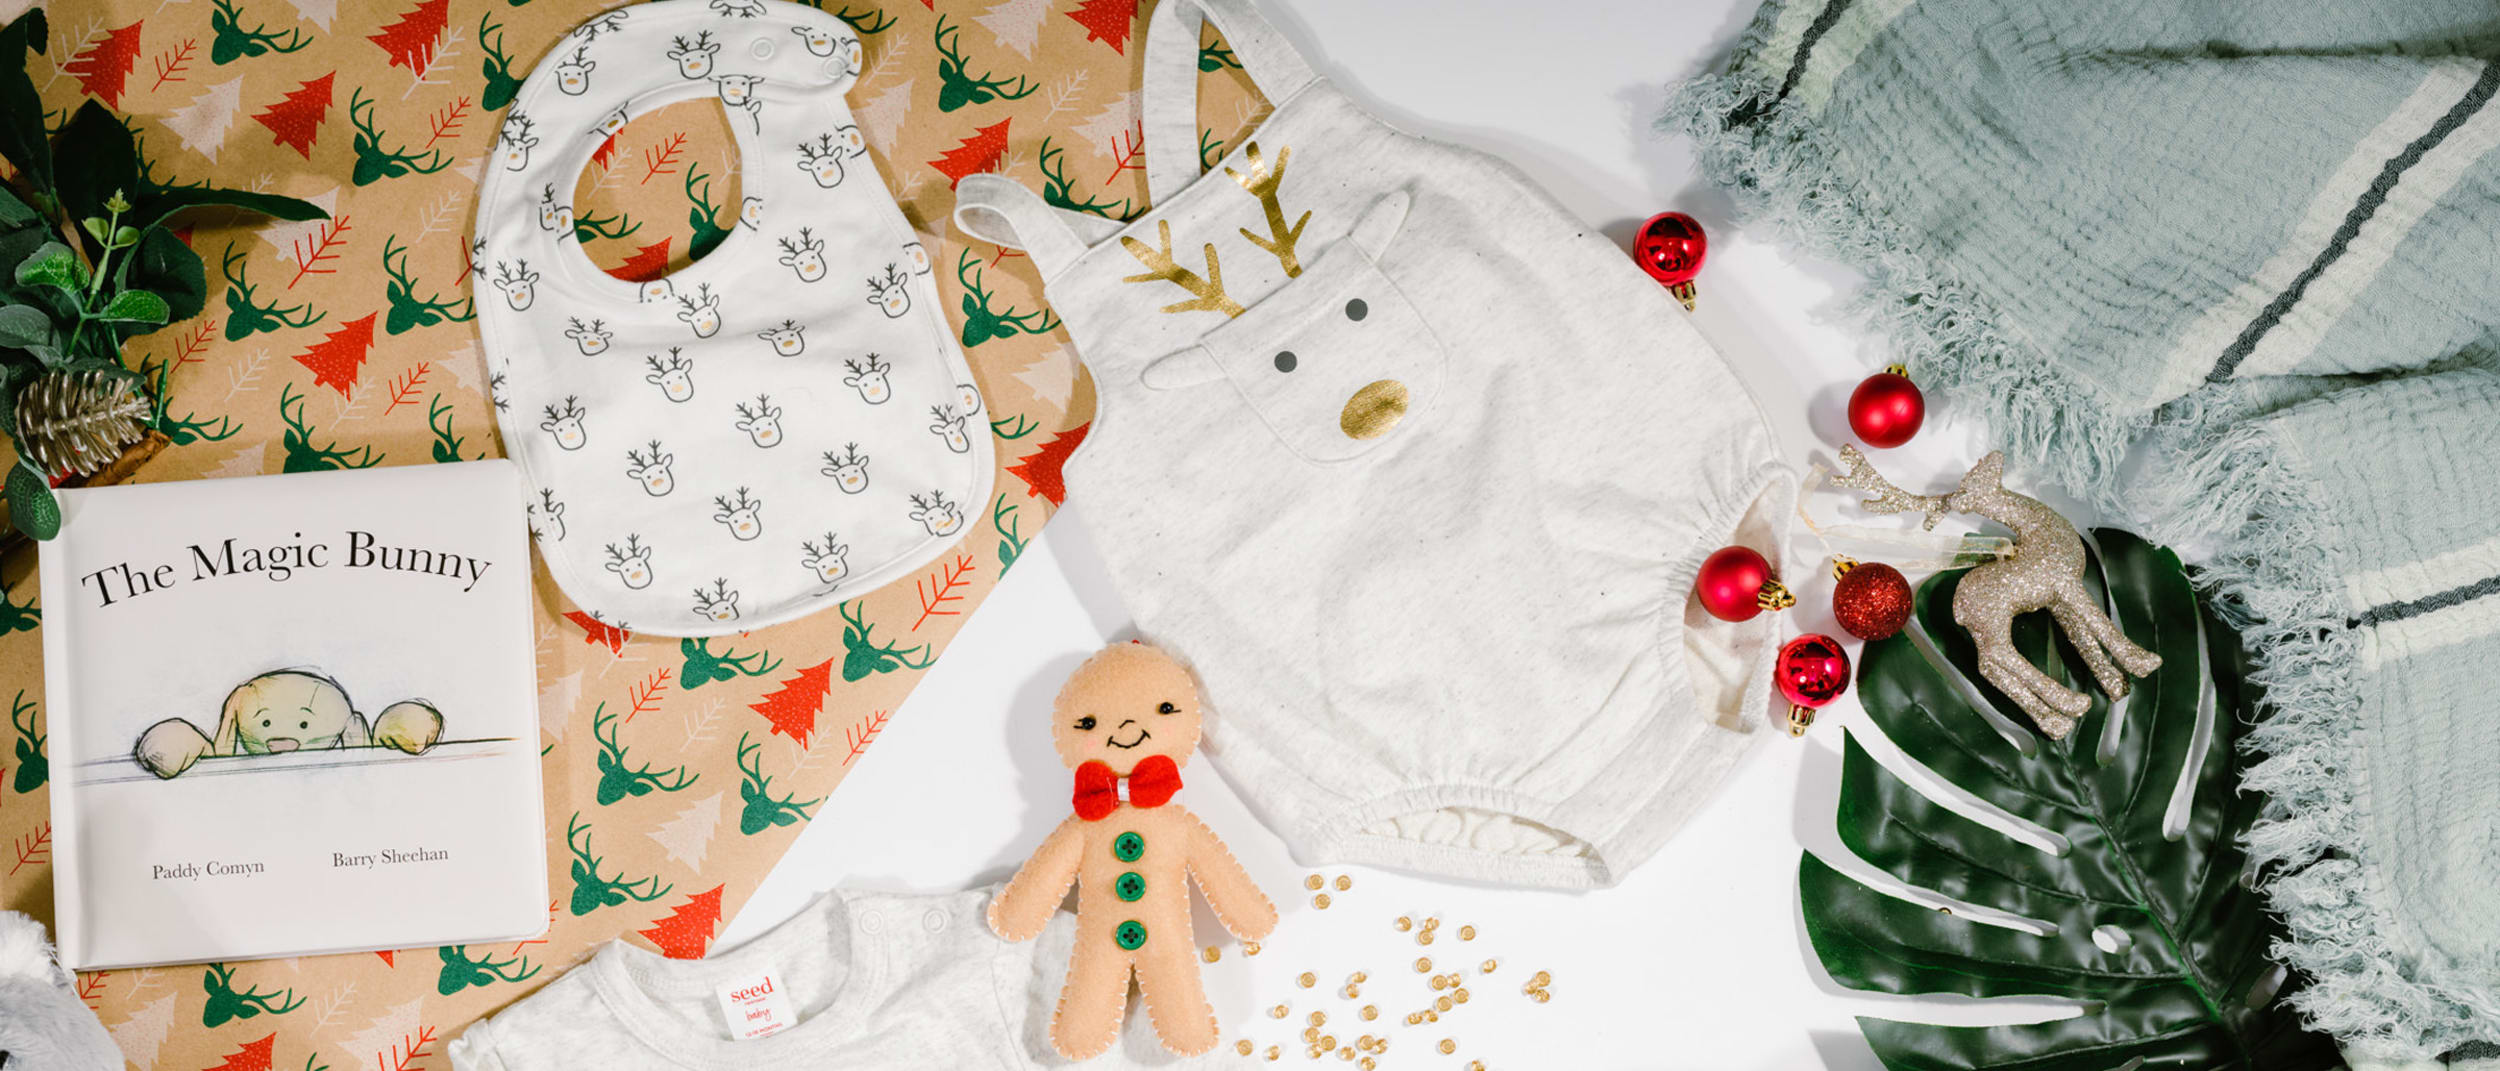 The ultimate Christmas gift guide: Mini me edition